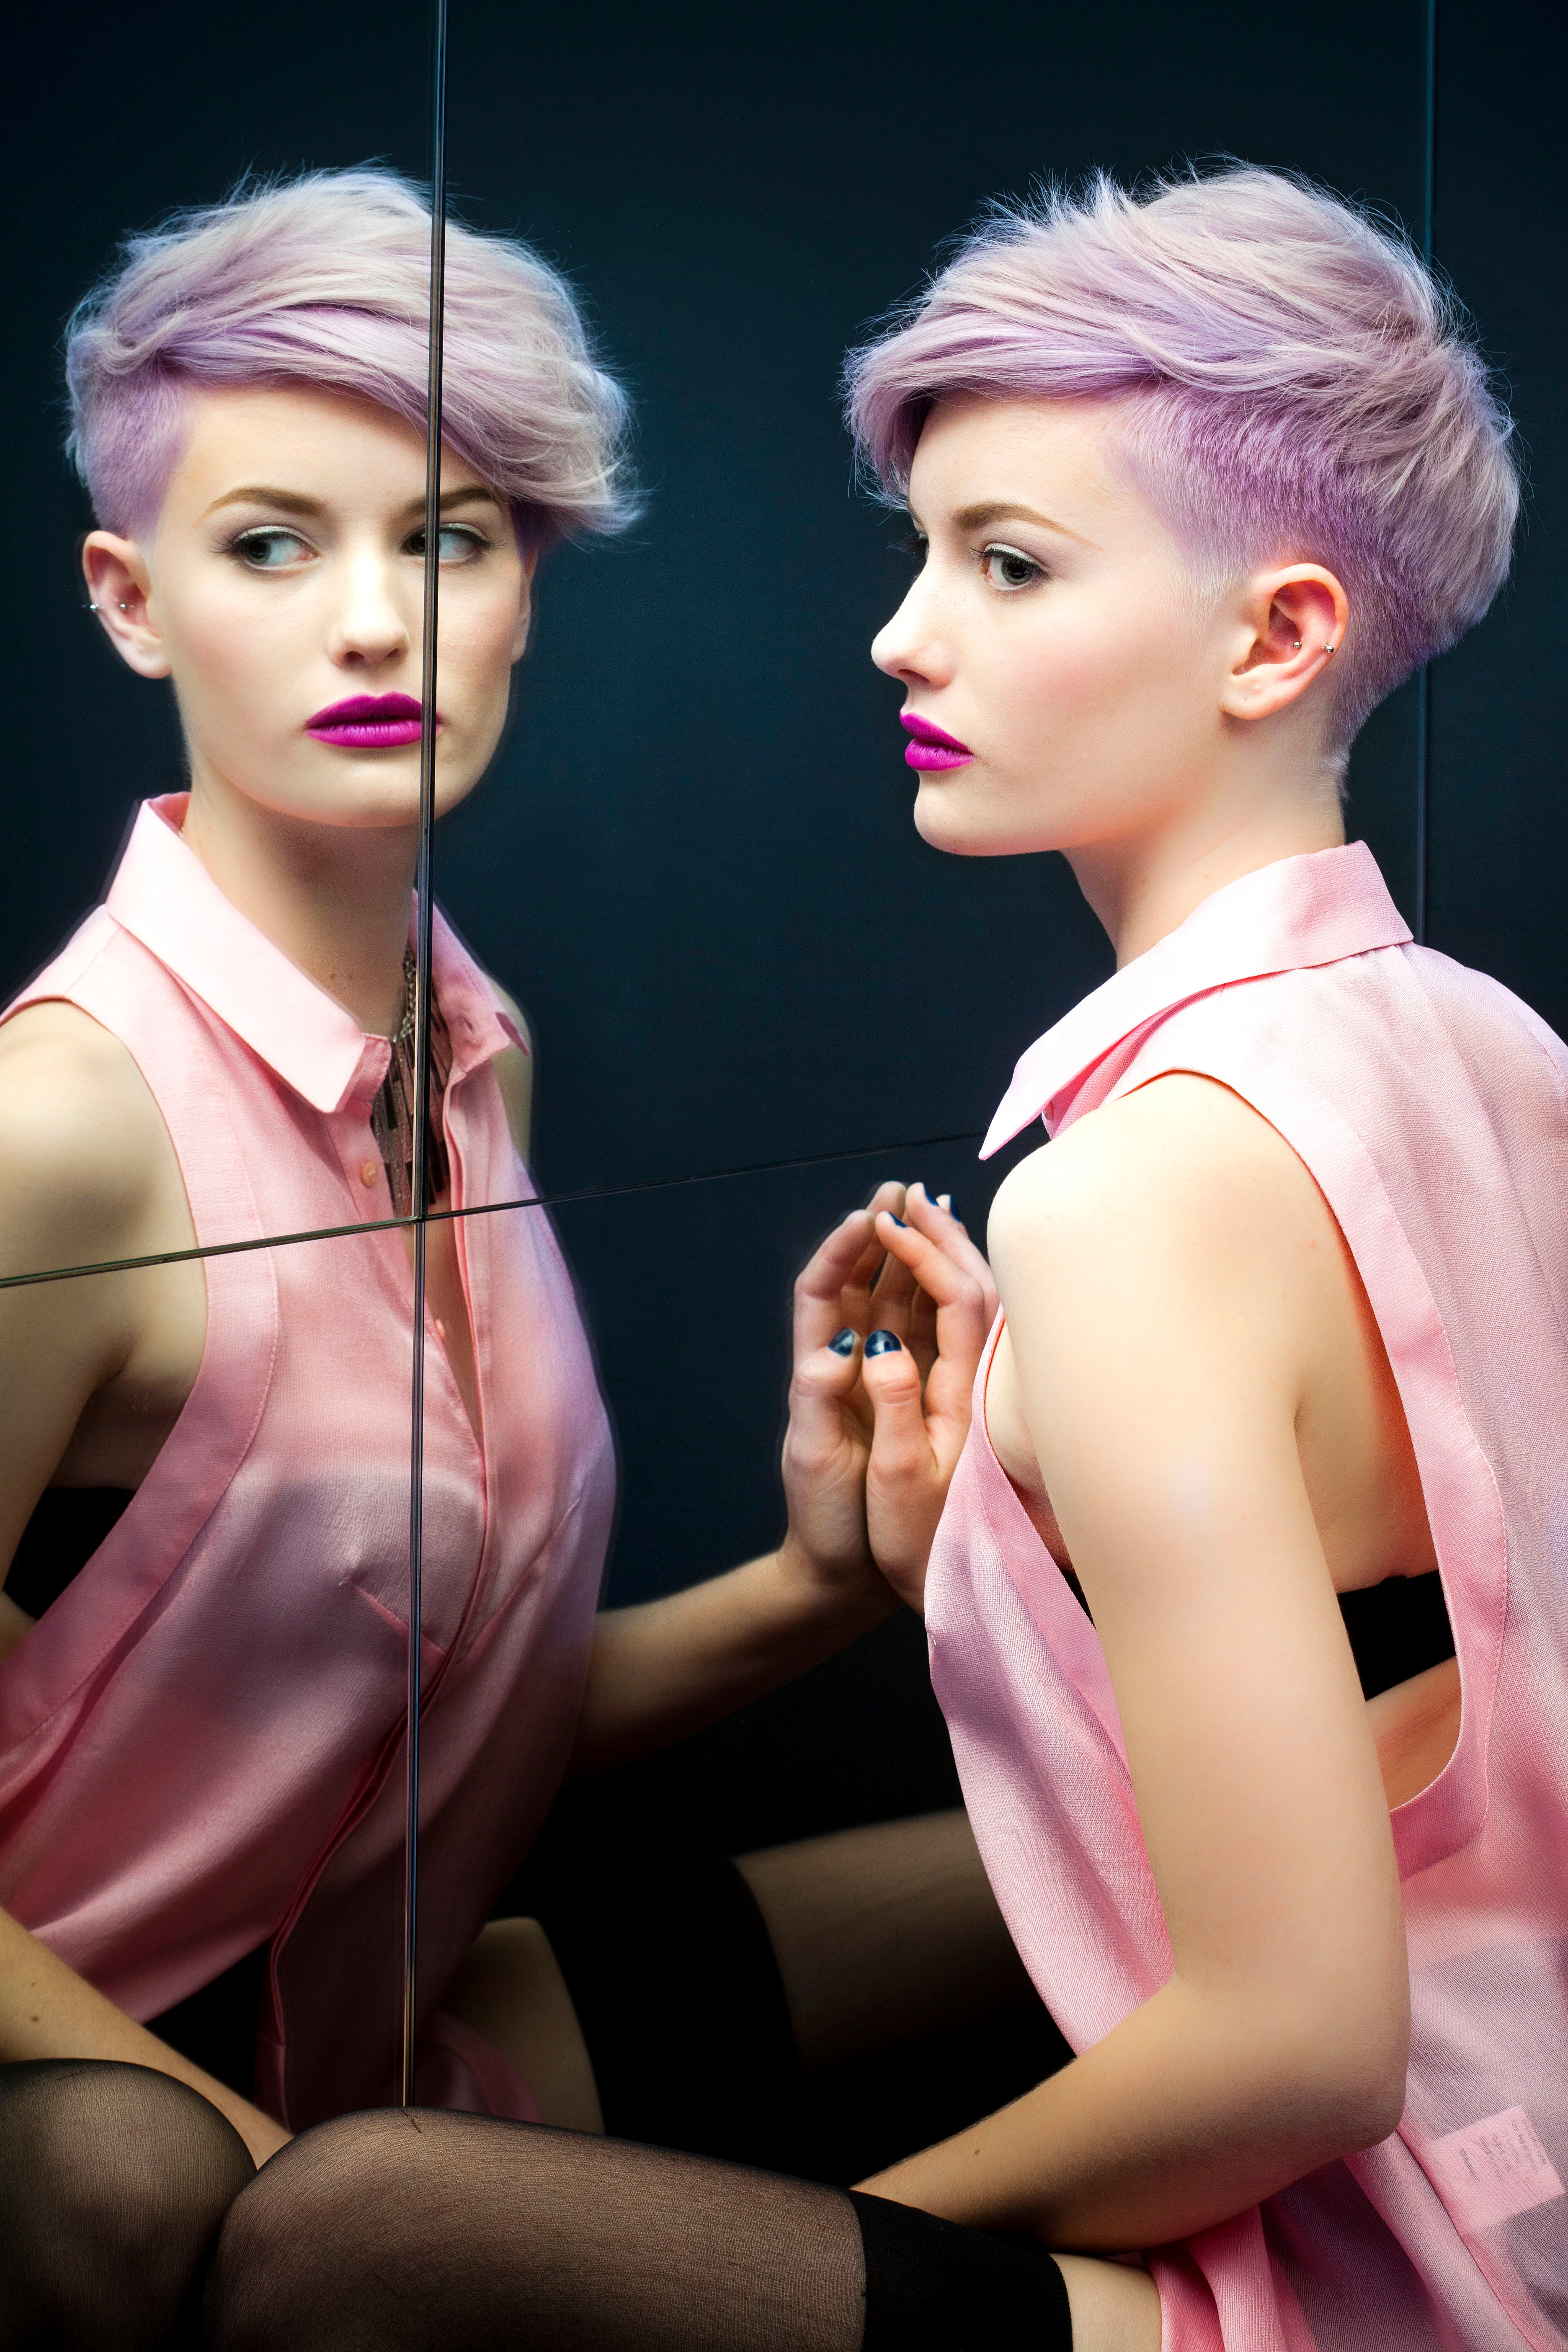 Adam Ciaccia Hairdresser Axis Hairdressing